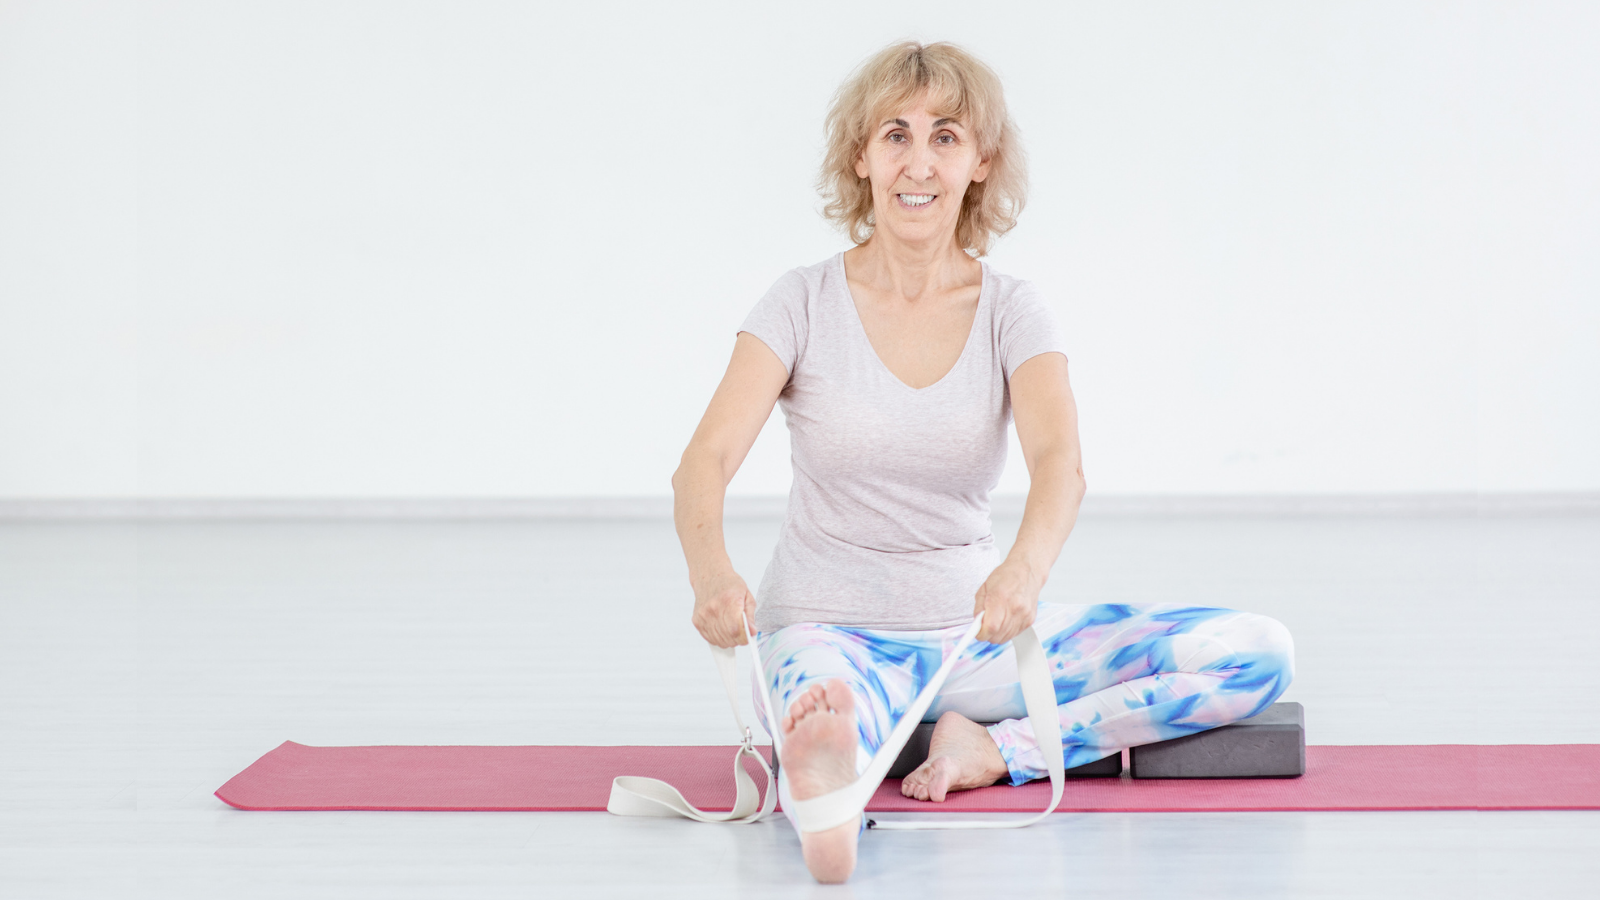 The benefits of using a strap to support the spine in Head-to-Knee yoga pose (Janu Sirsasana)